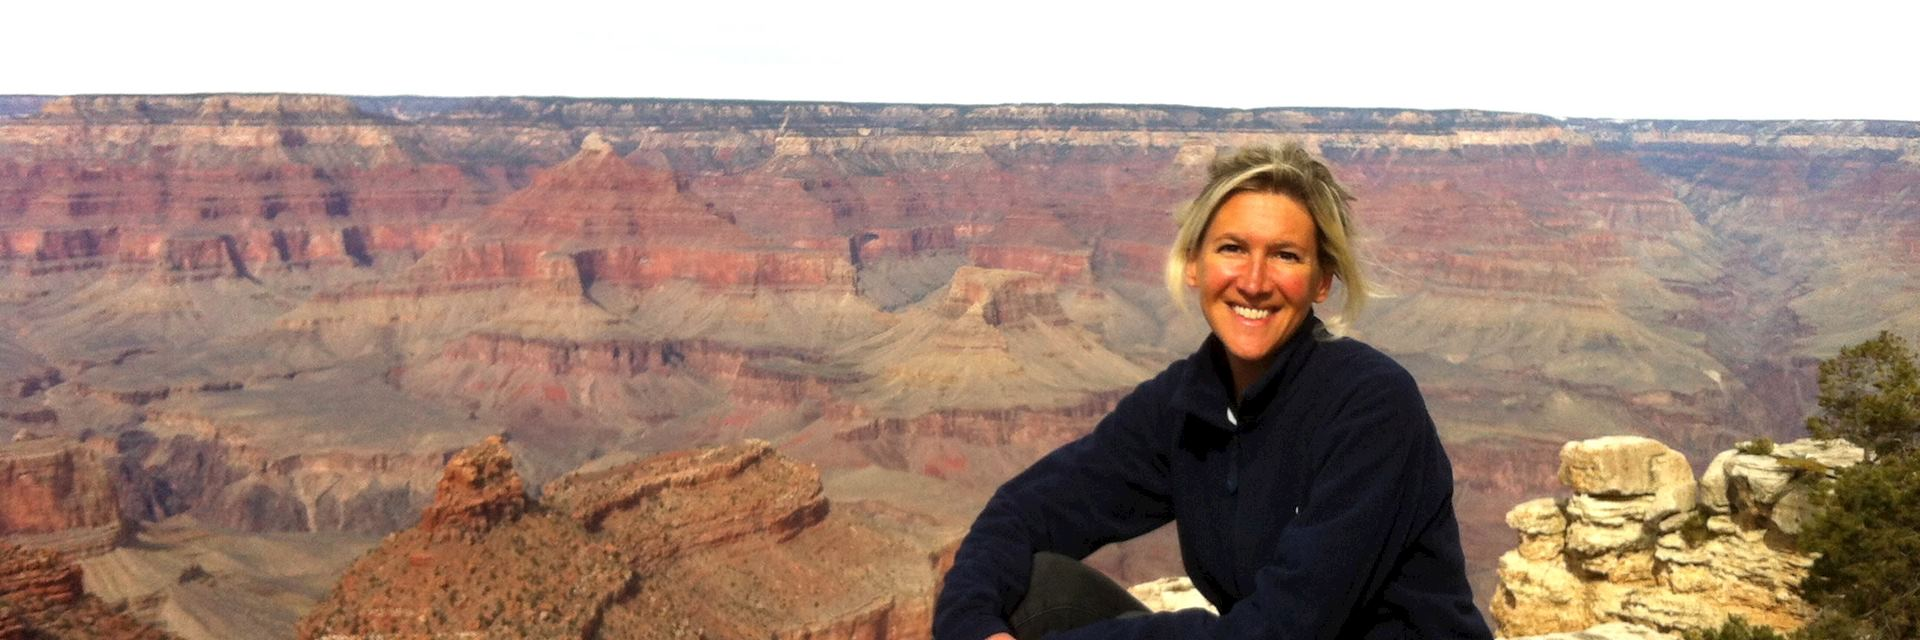 Beth at the South Rim, Grand Canyon